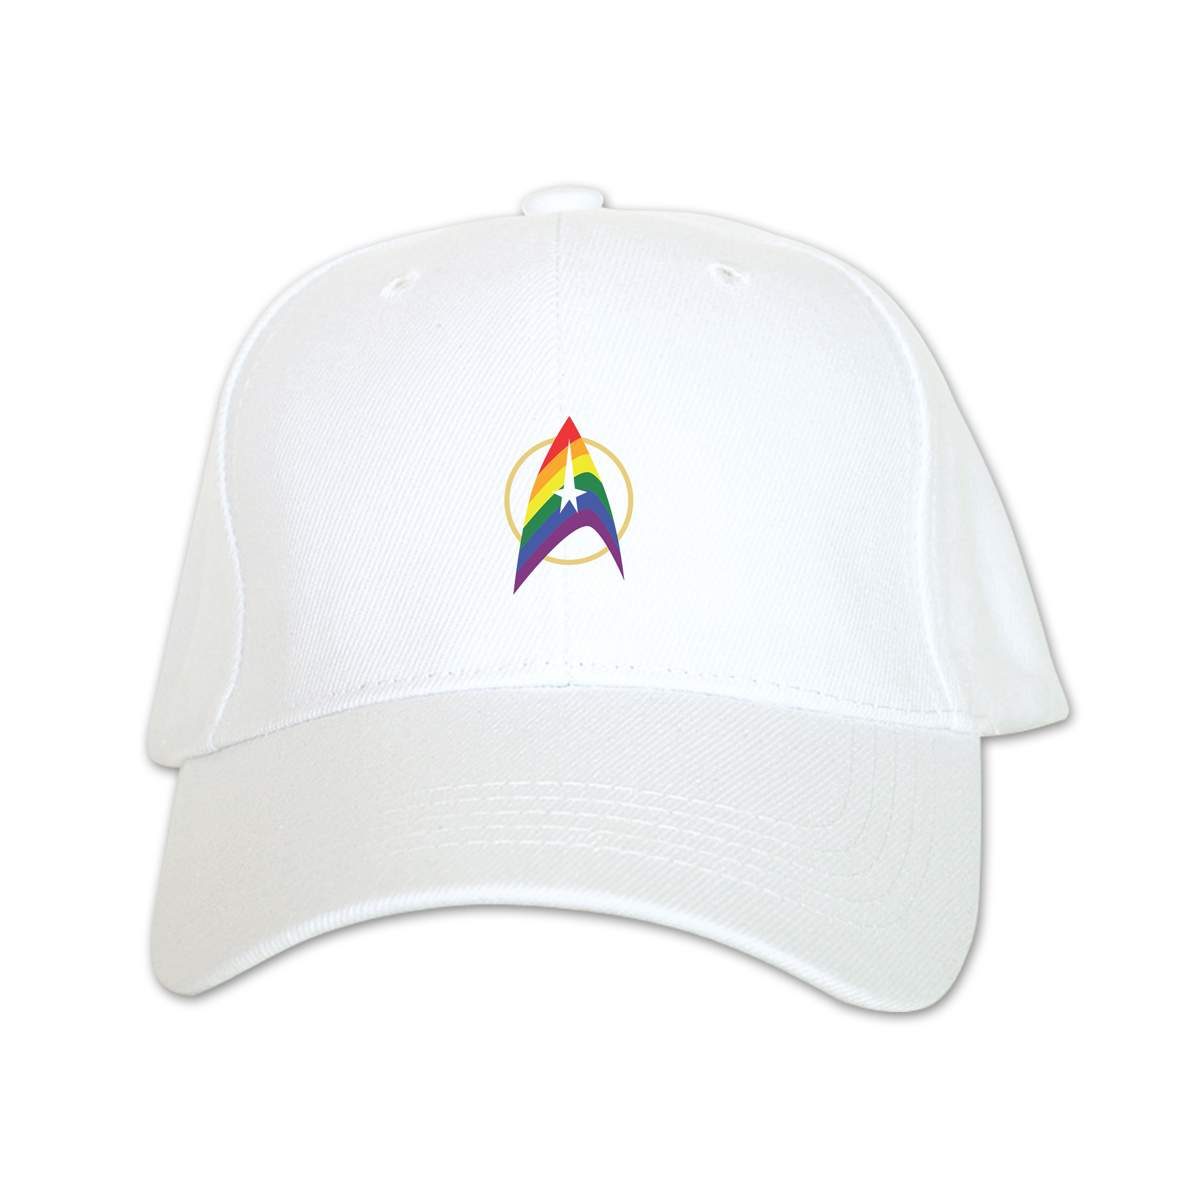 Star Trek The Original Series Pride Baseball Hat